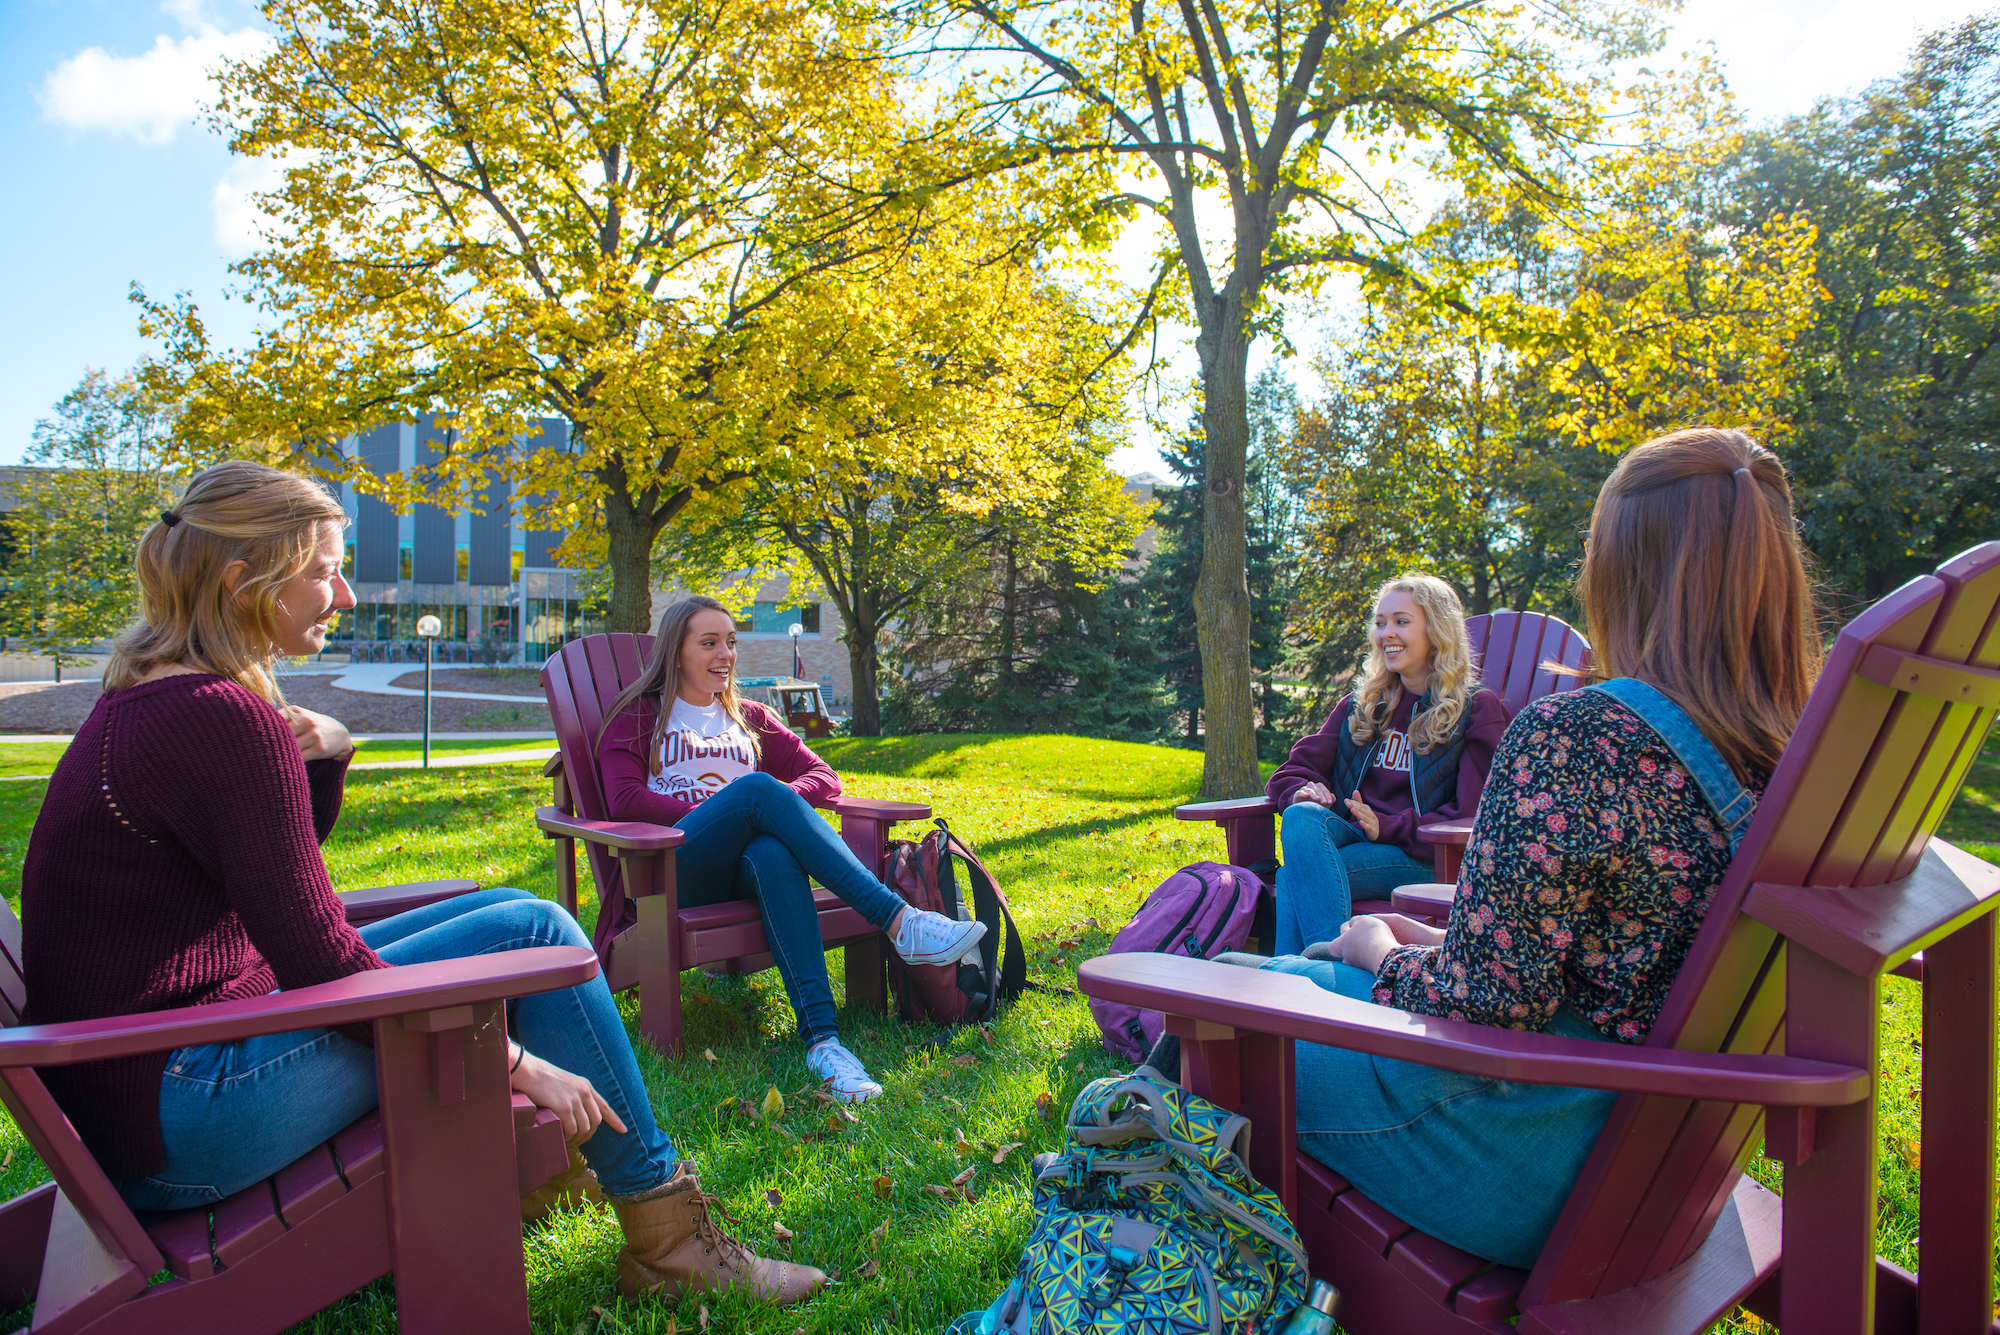 students in adirondack chairs on lawn